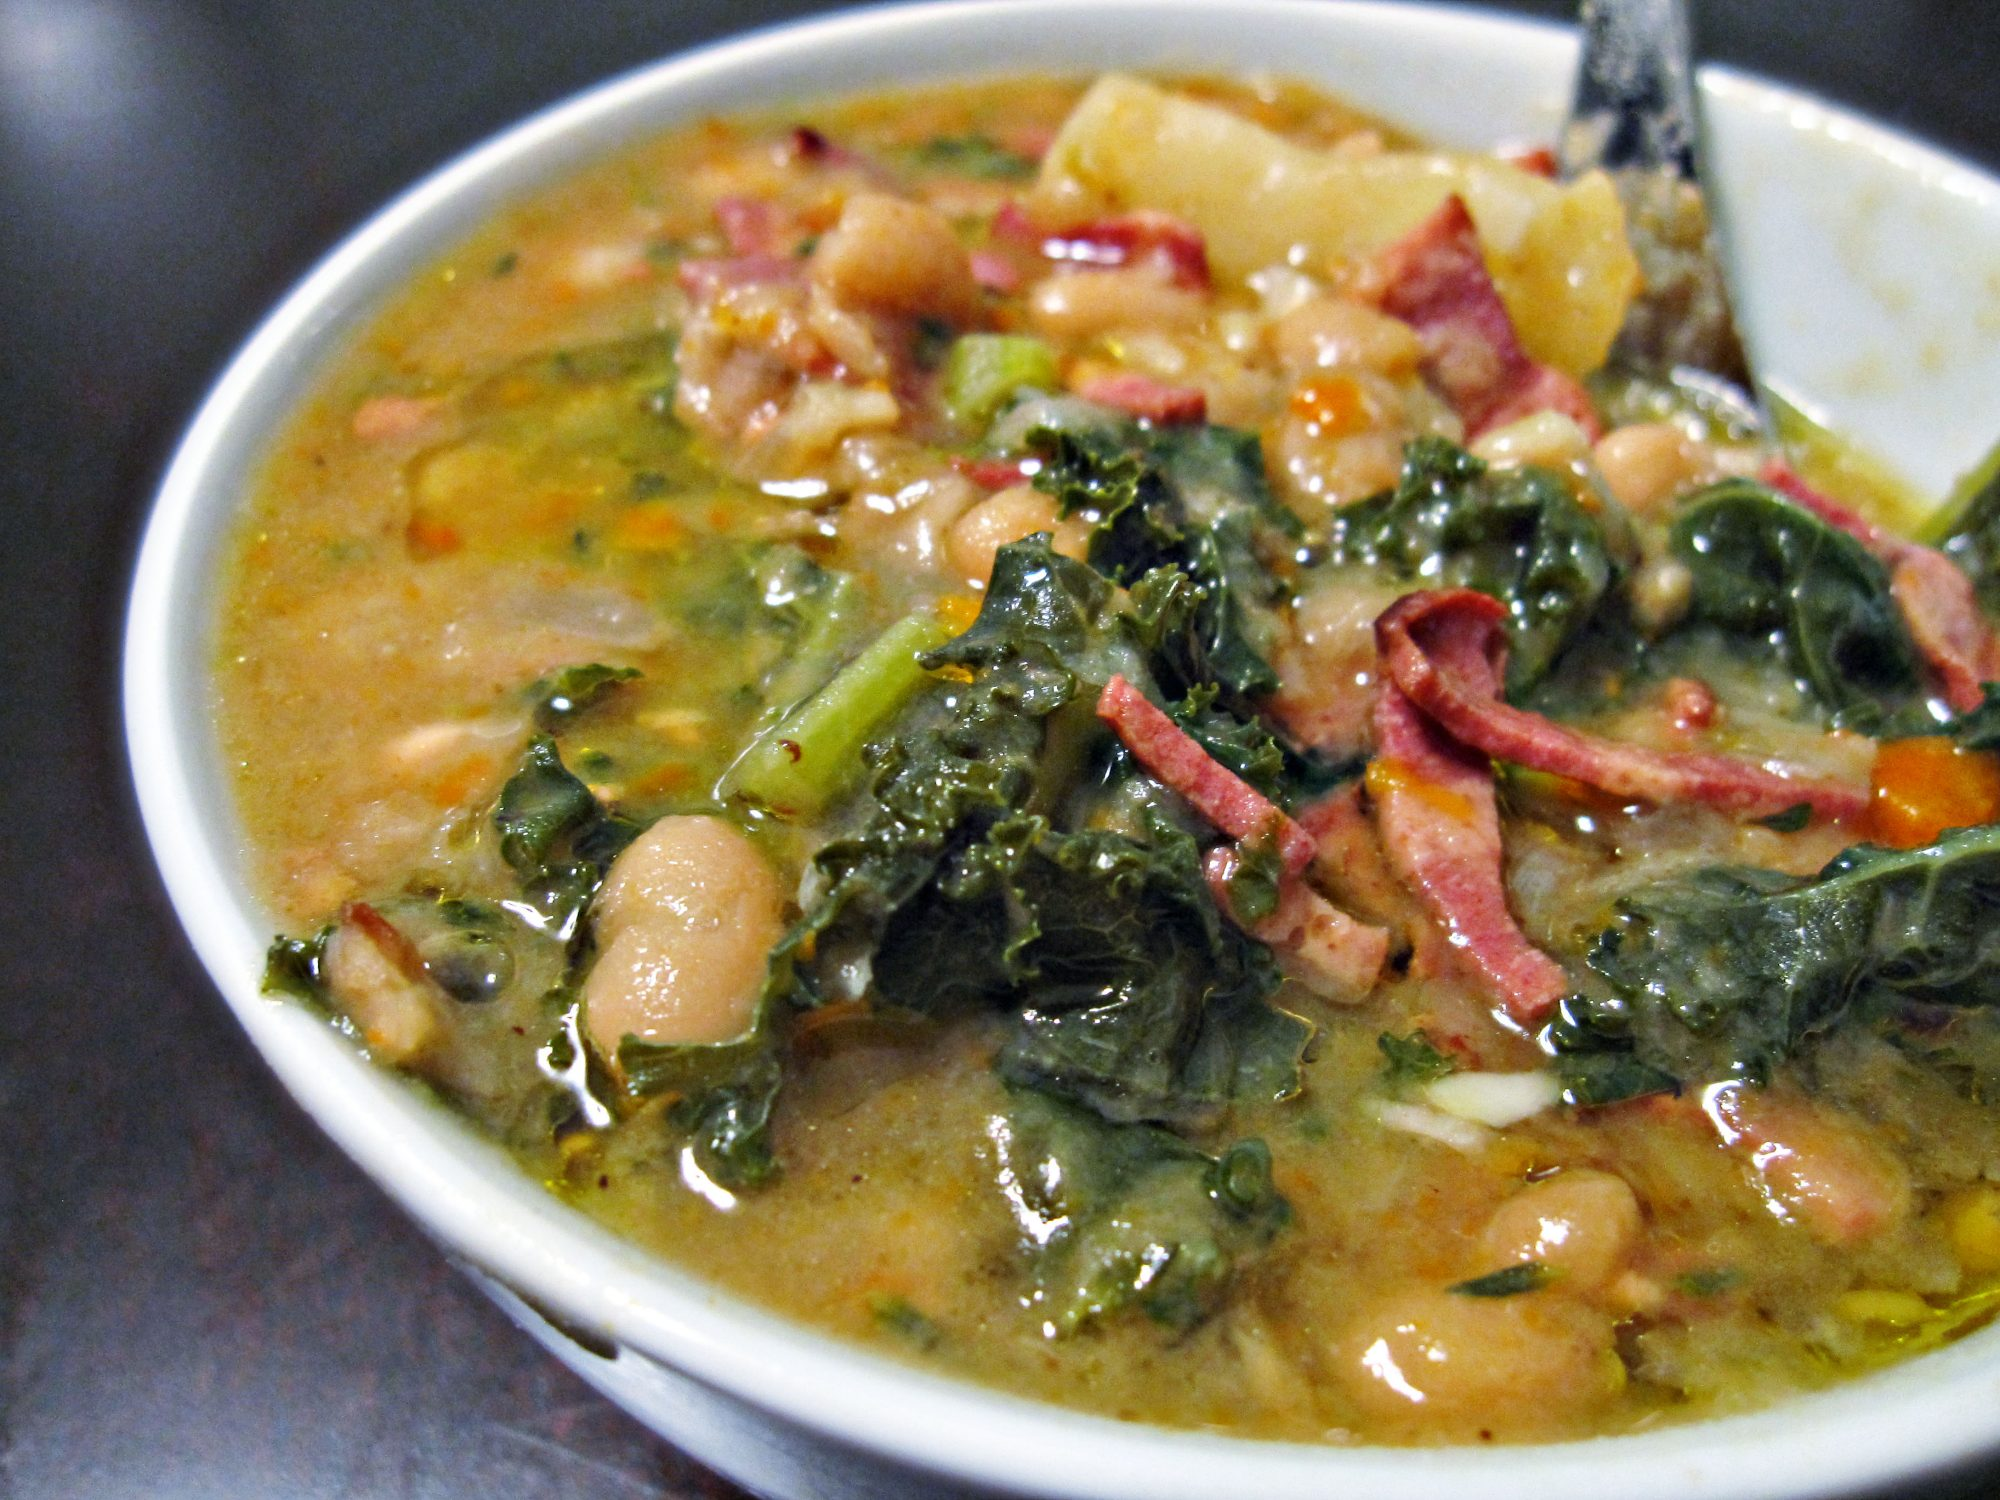 a hearty bowl of bacon, greens, and white bean soup